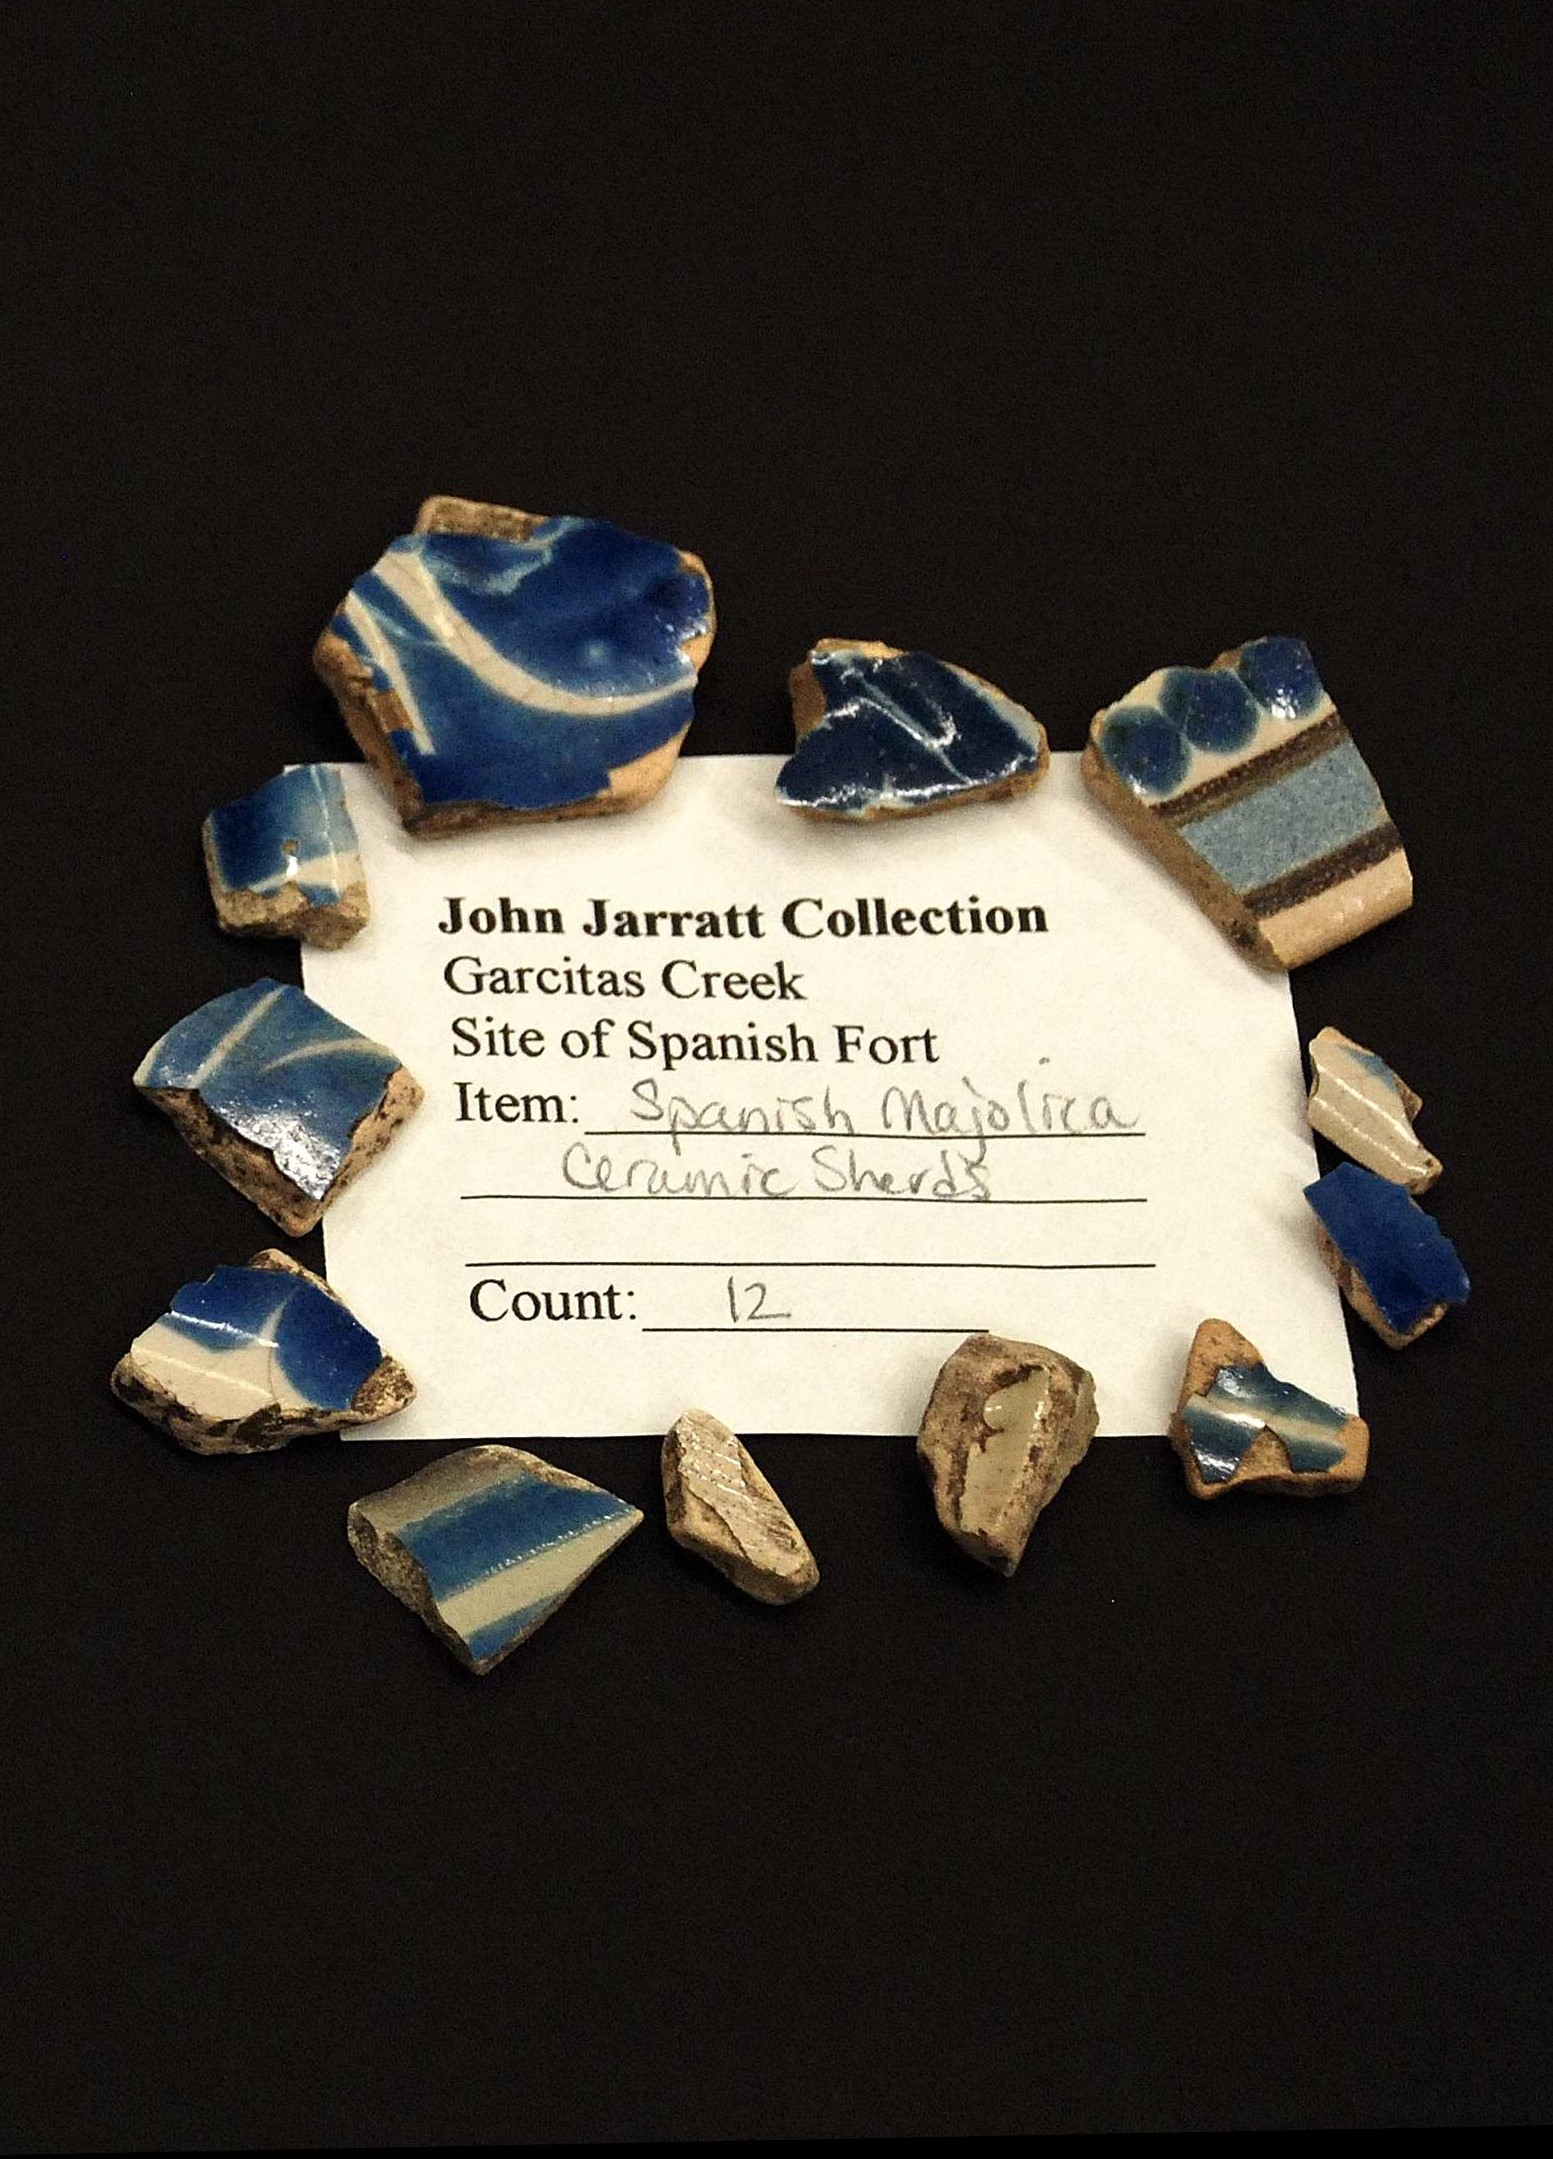 A label with the text John Jarratt Collection...Spanish Majolica Ceramic Shards surrounded by blue ceramic shards